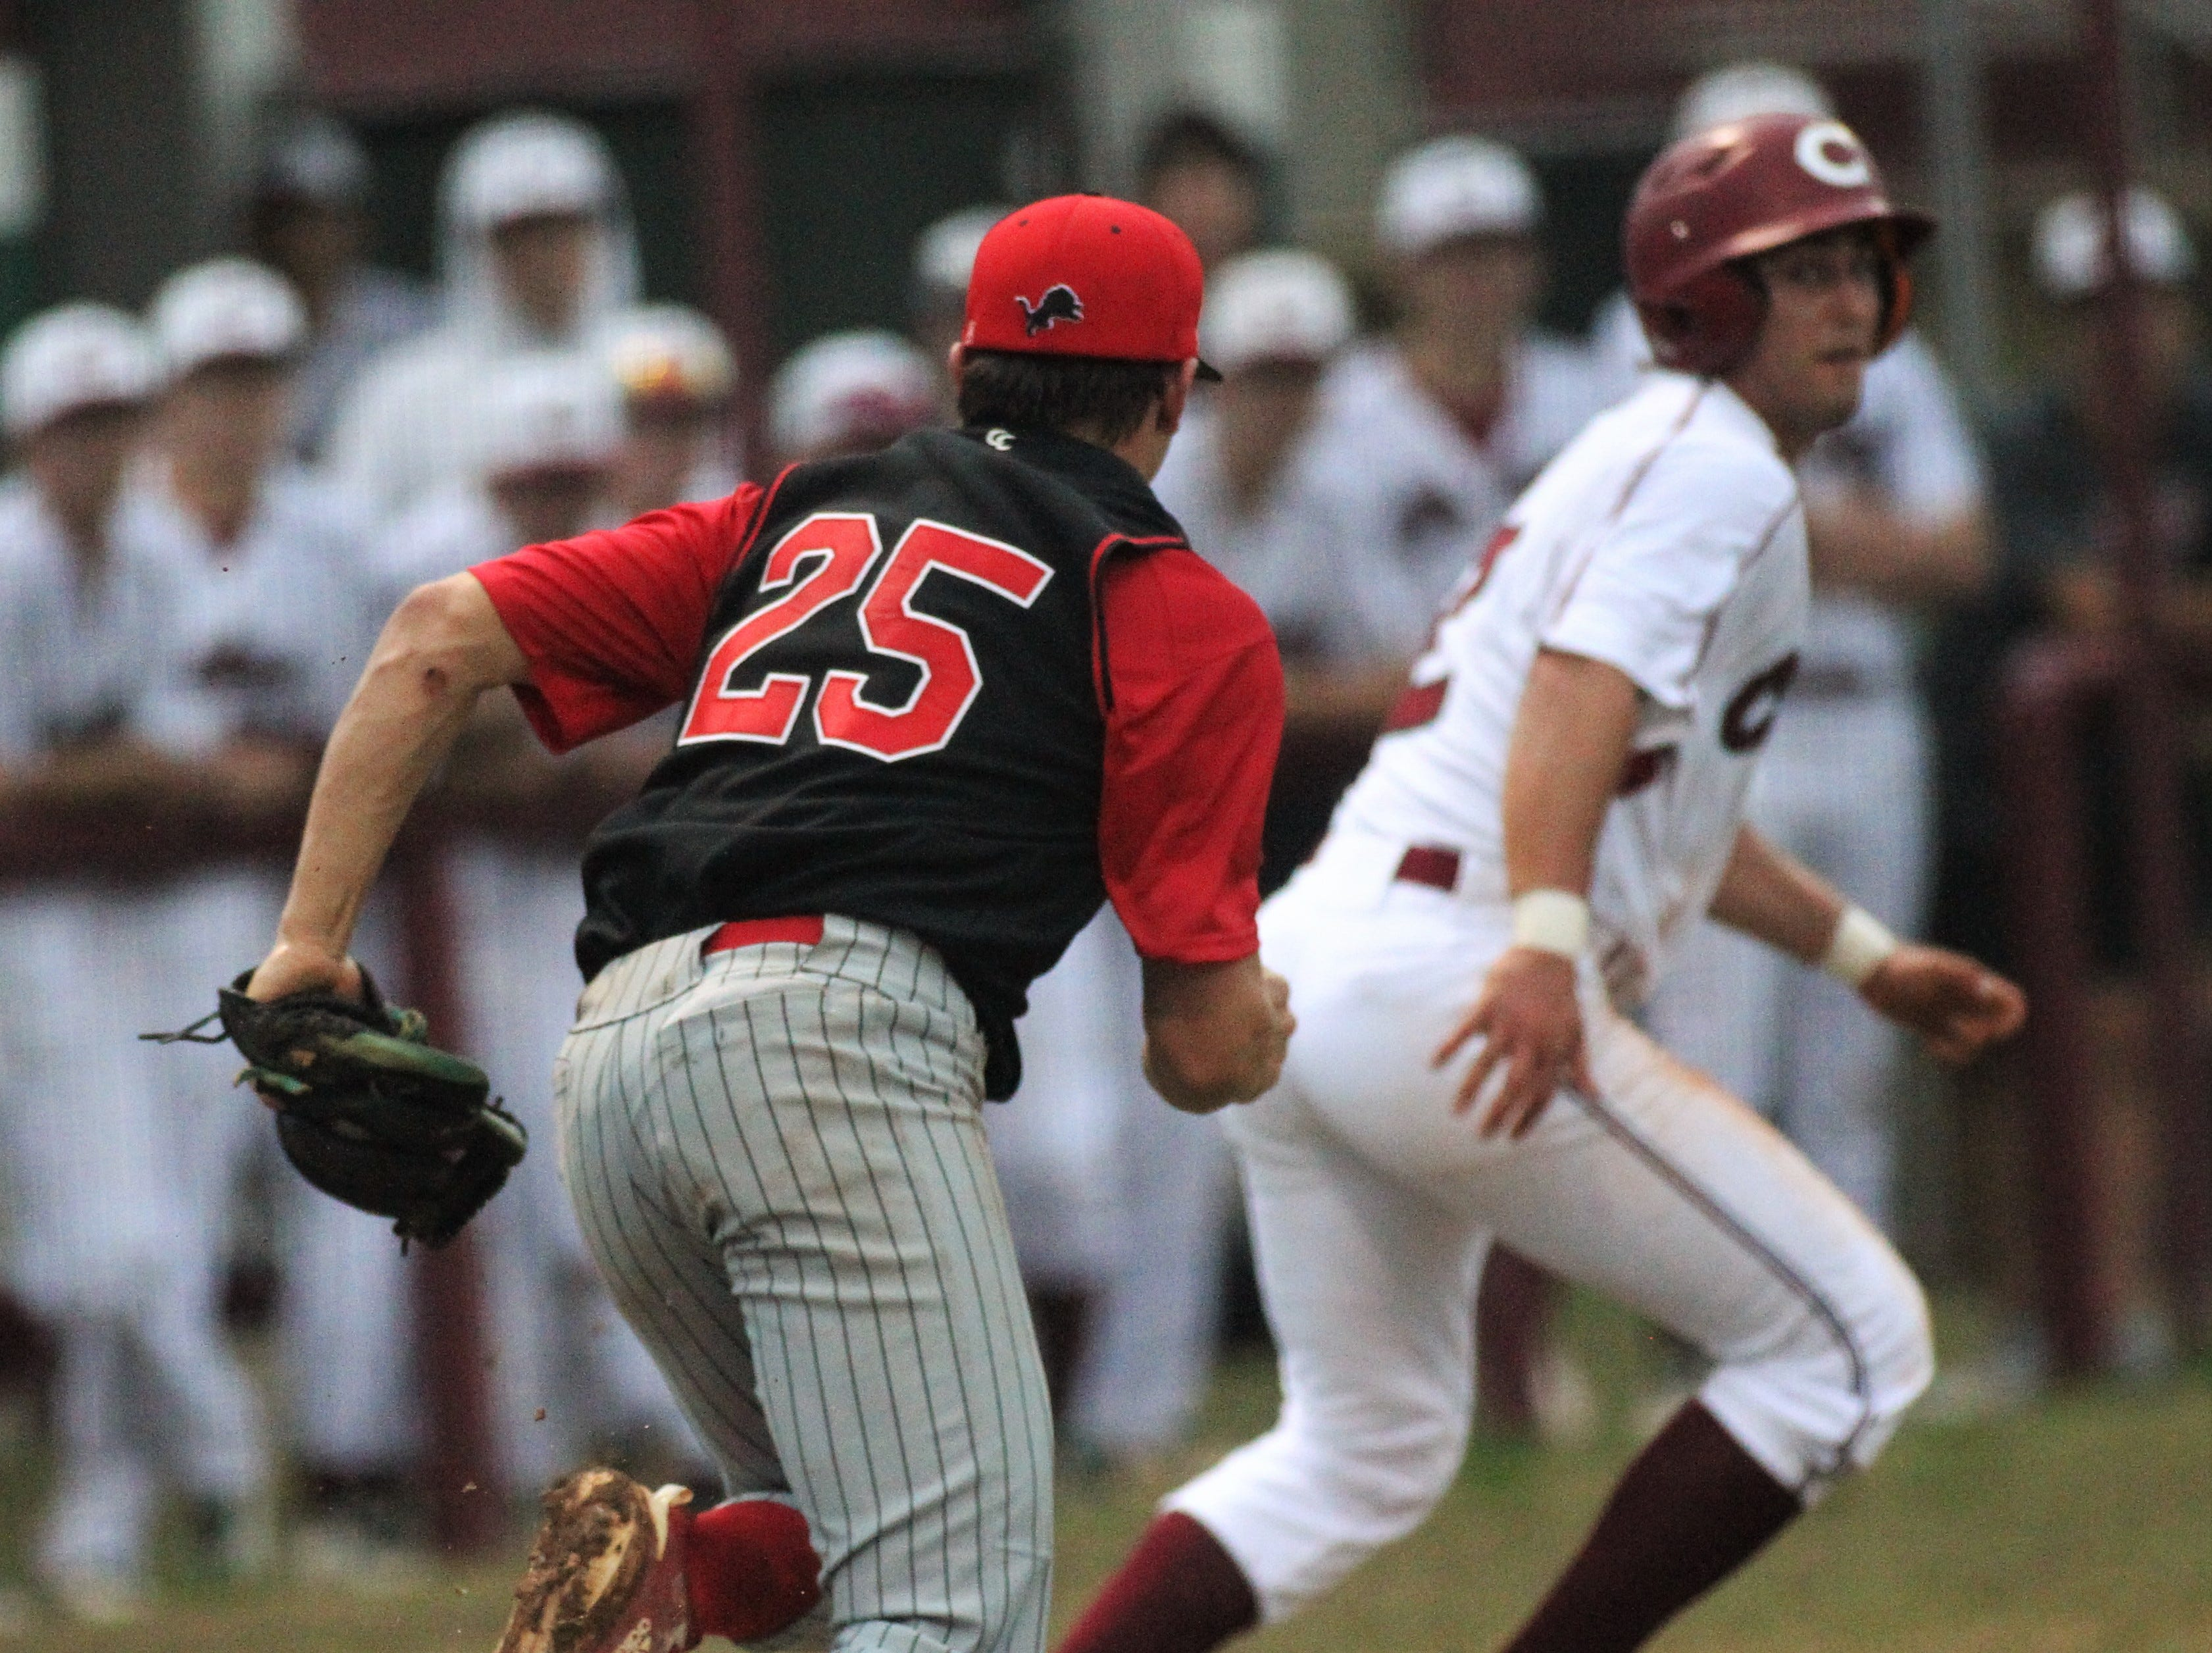 Leon pitcher Tyler Borges chases Chiles' Cal McCallum in a rundown as Chiles won an 11-6 home game against Leon on Friday, April 5, 2019, to force a season split. The Lions won 3-0 earlier in the week.